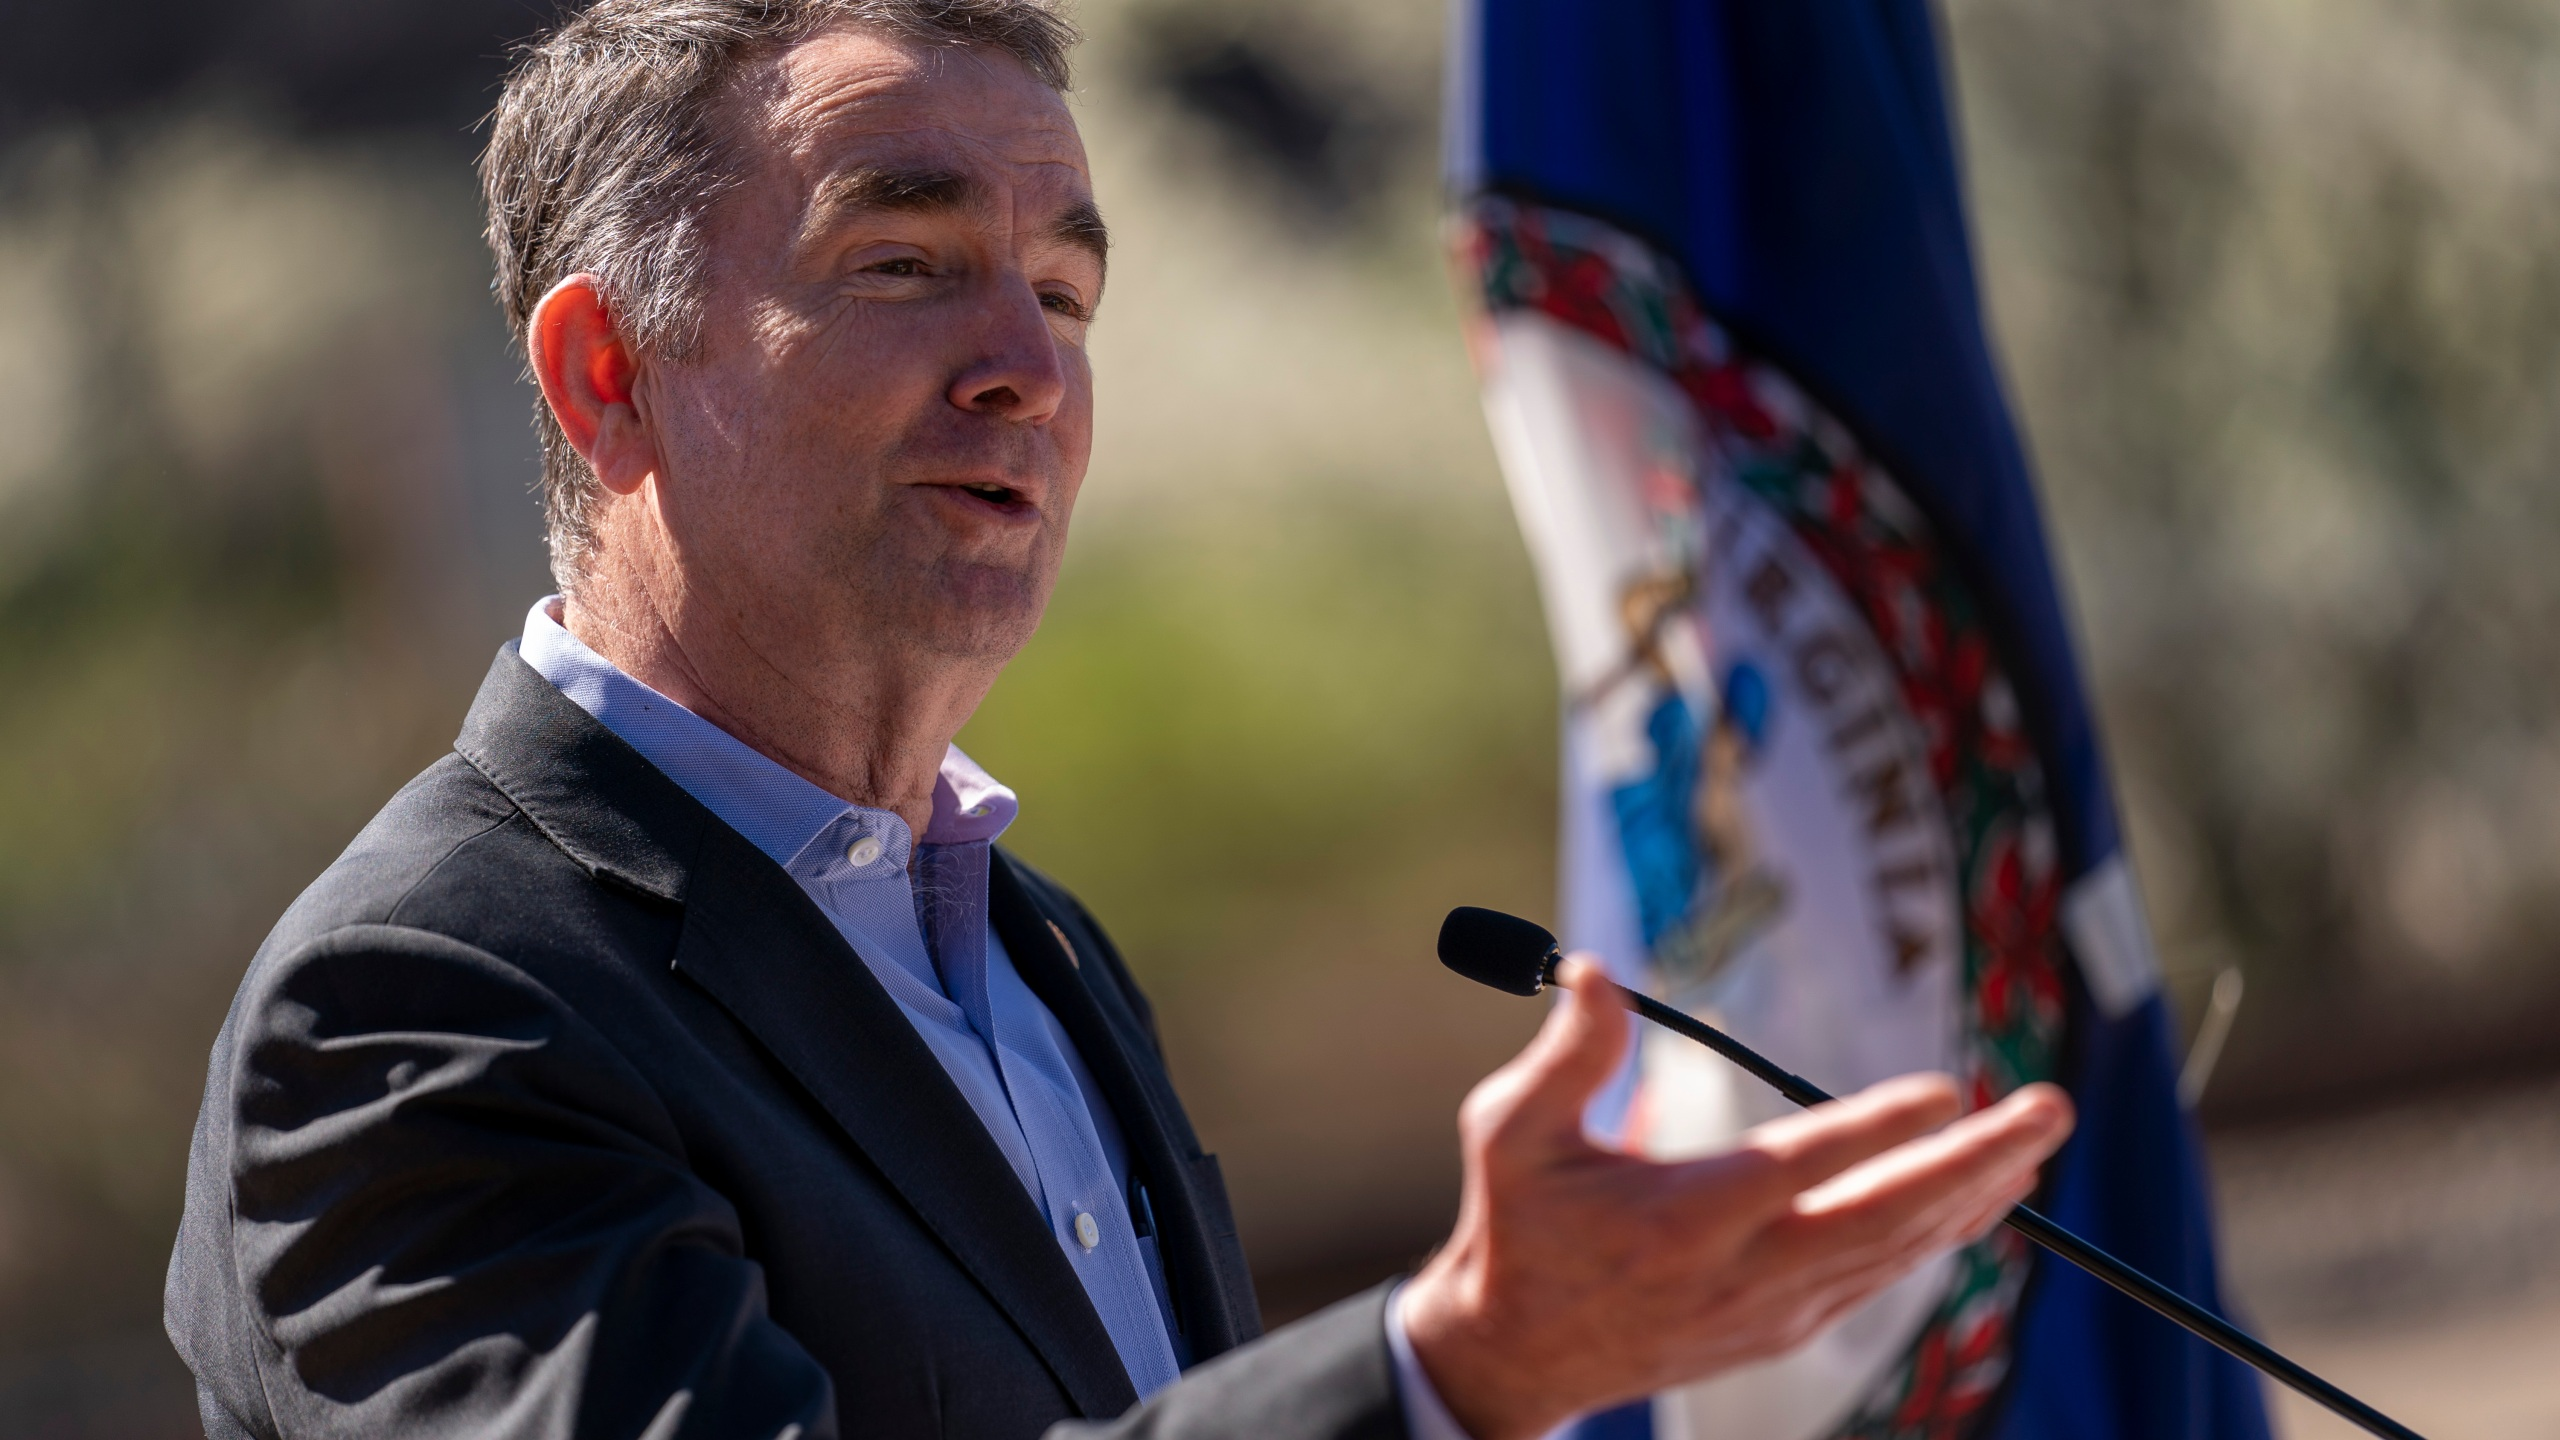 Governor Northam speaks to a crowd. (AP Photo/Andrew Harnik, File)